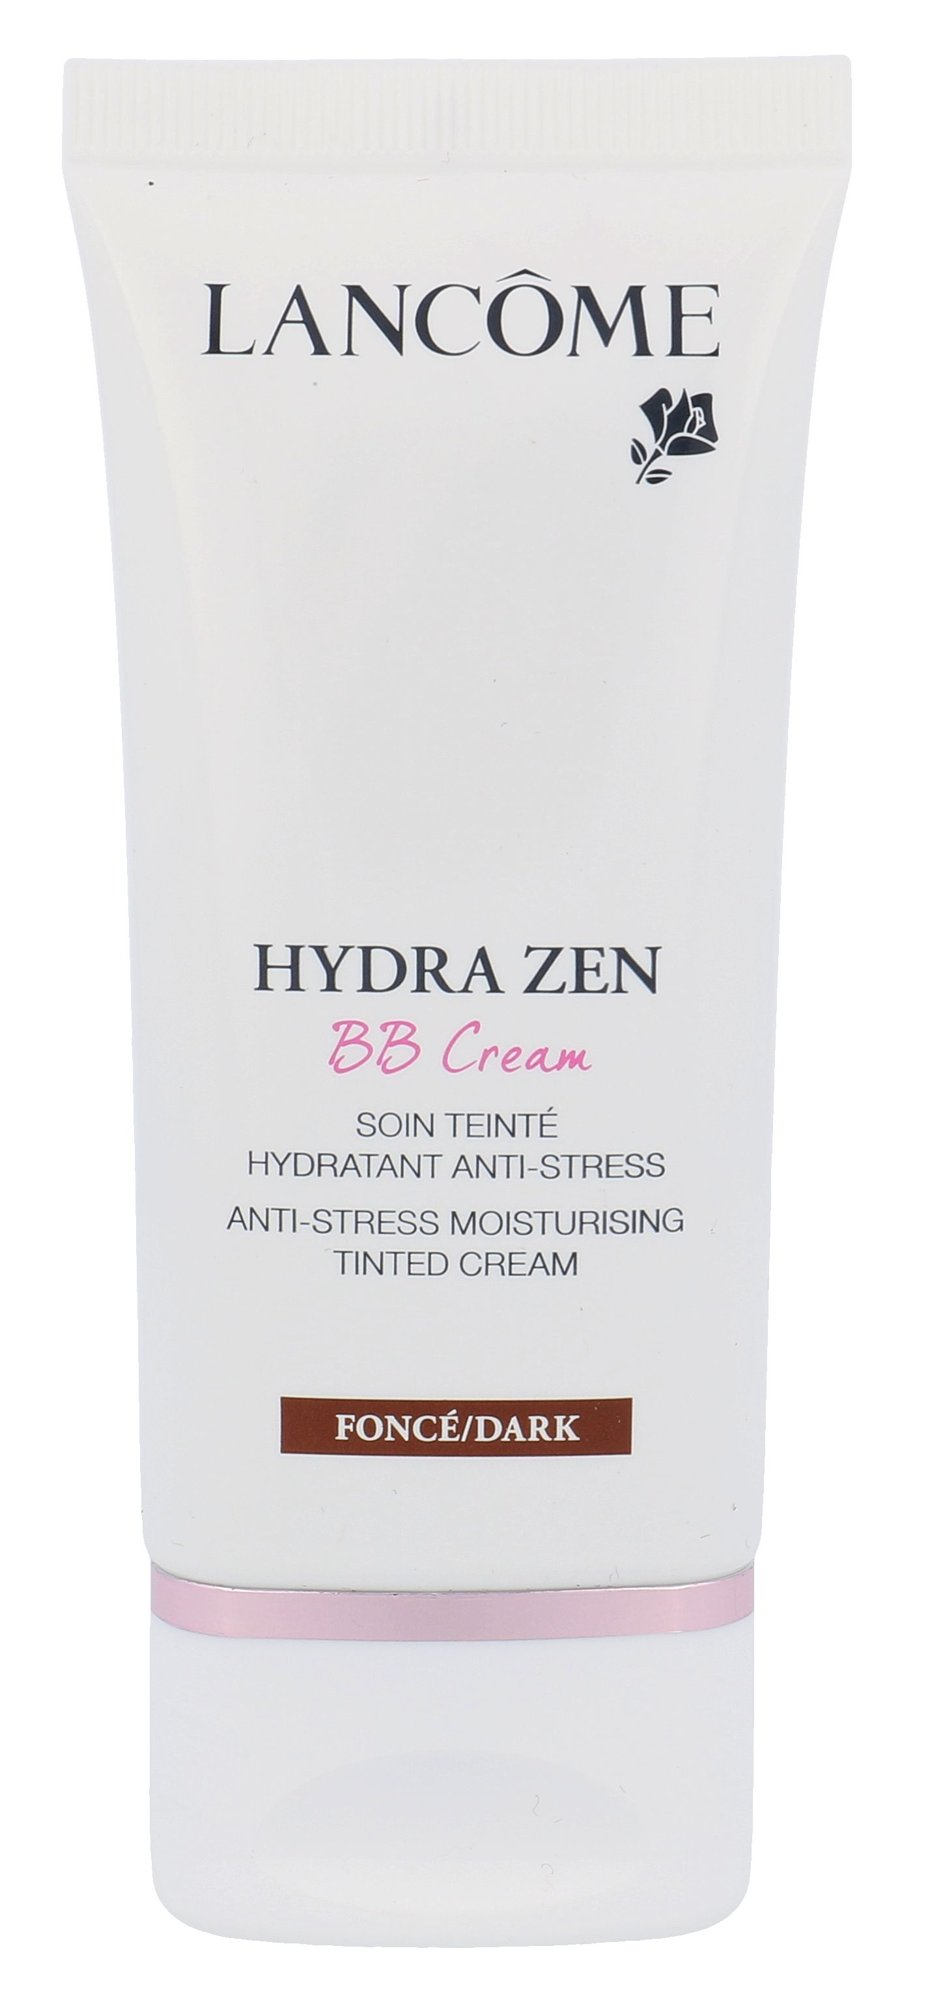 Lancôme Hydra Zen Cosmetic 50ml 04 Dark